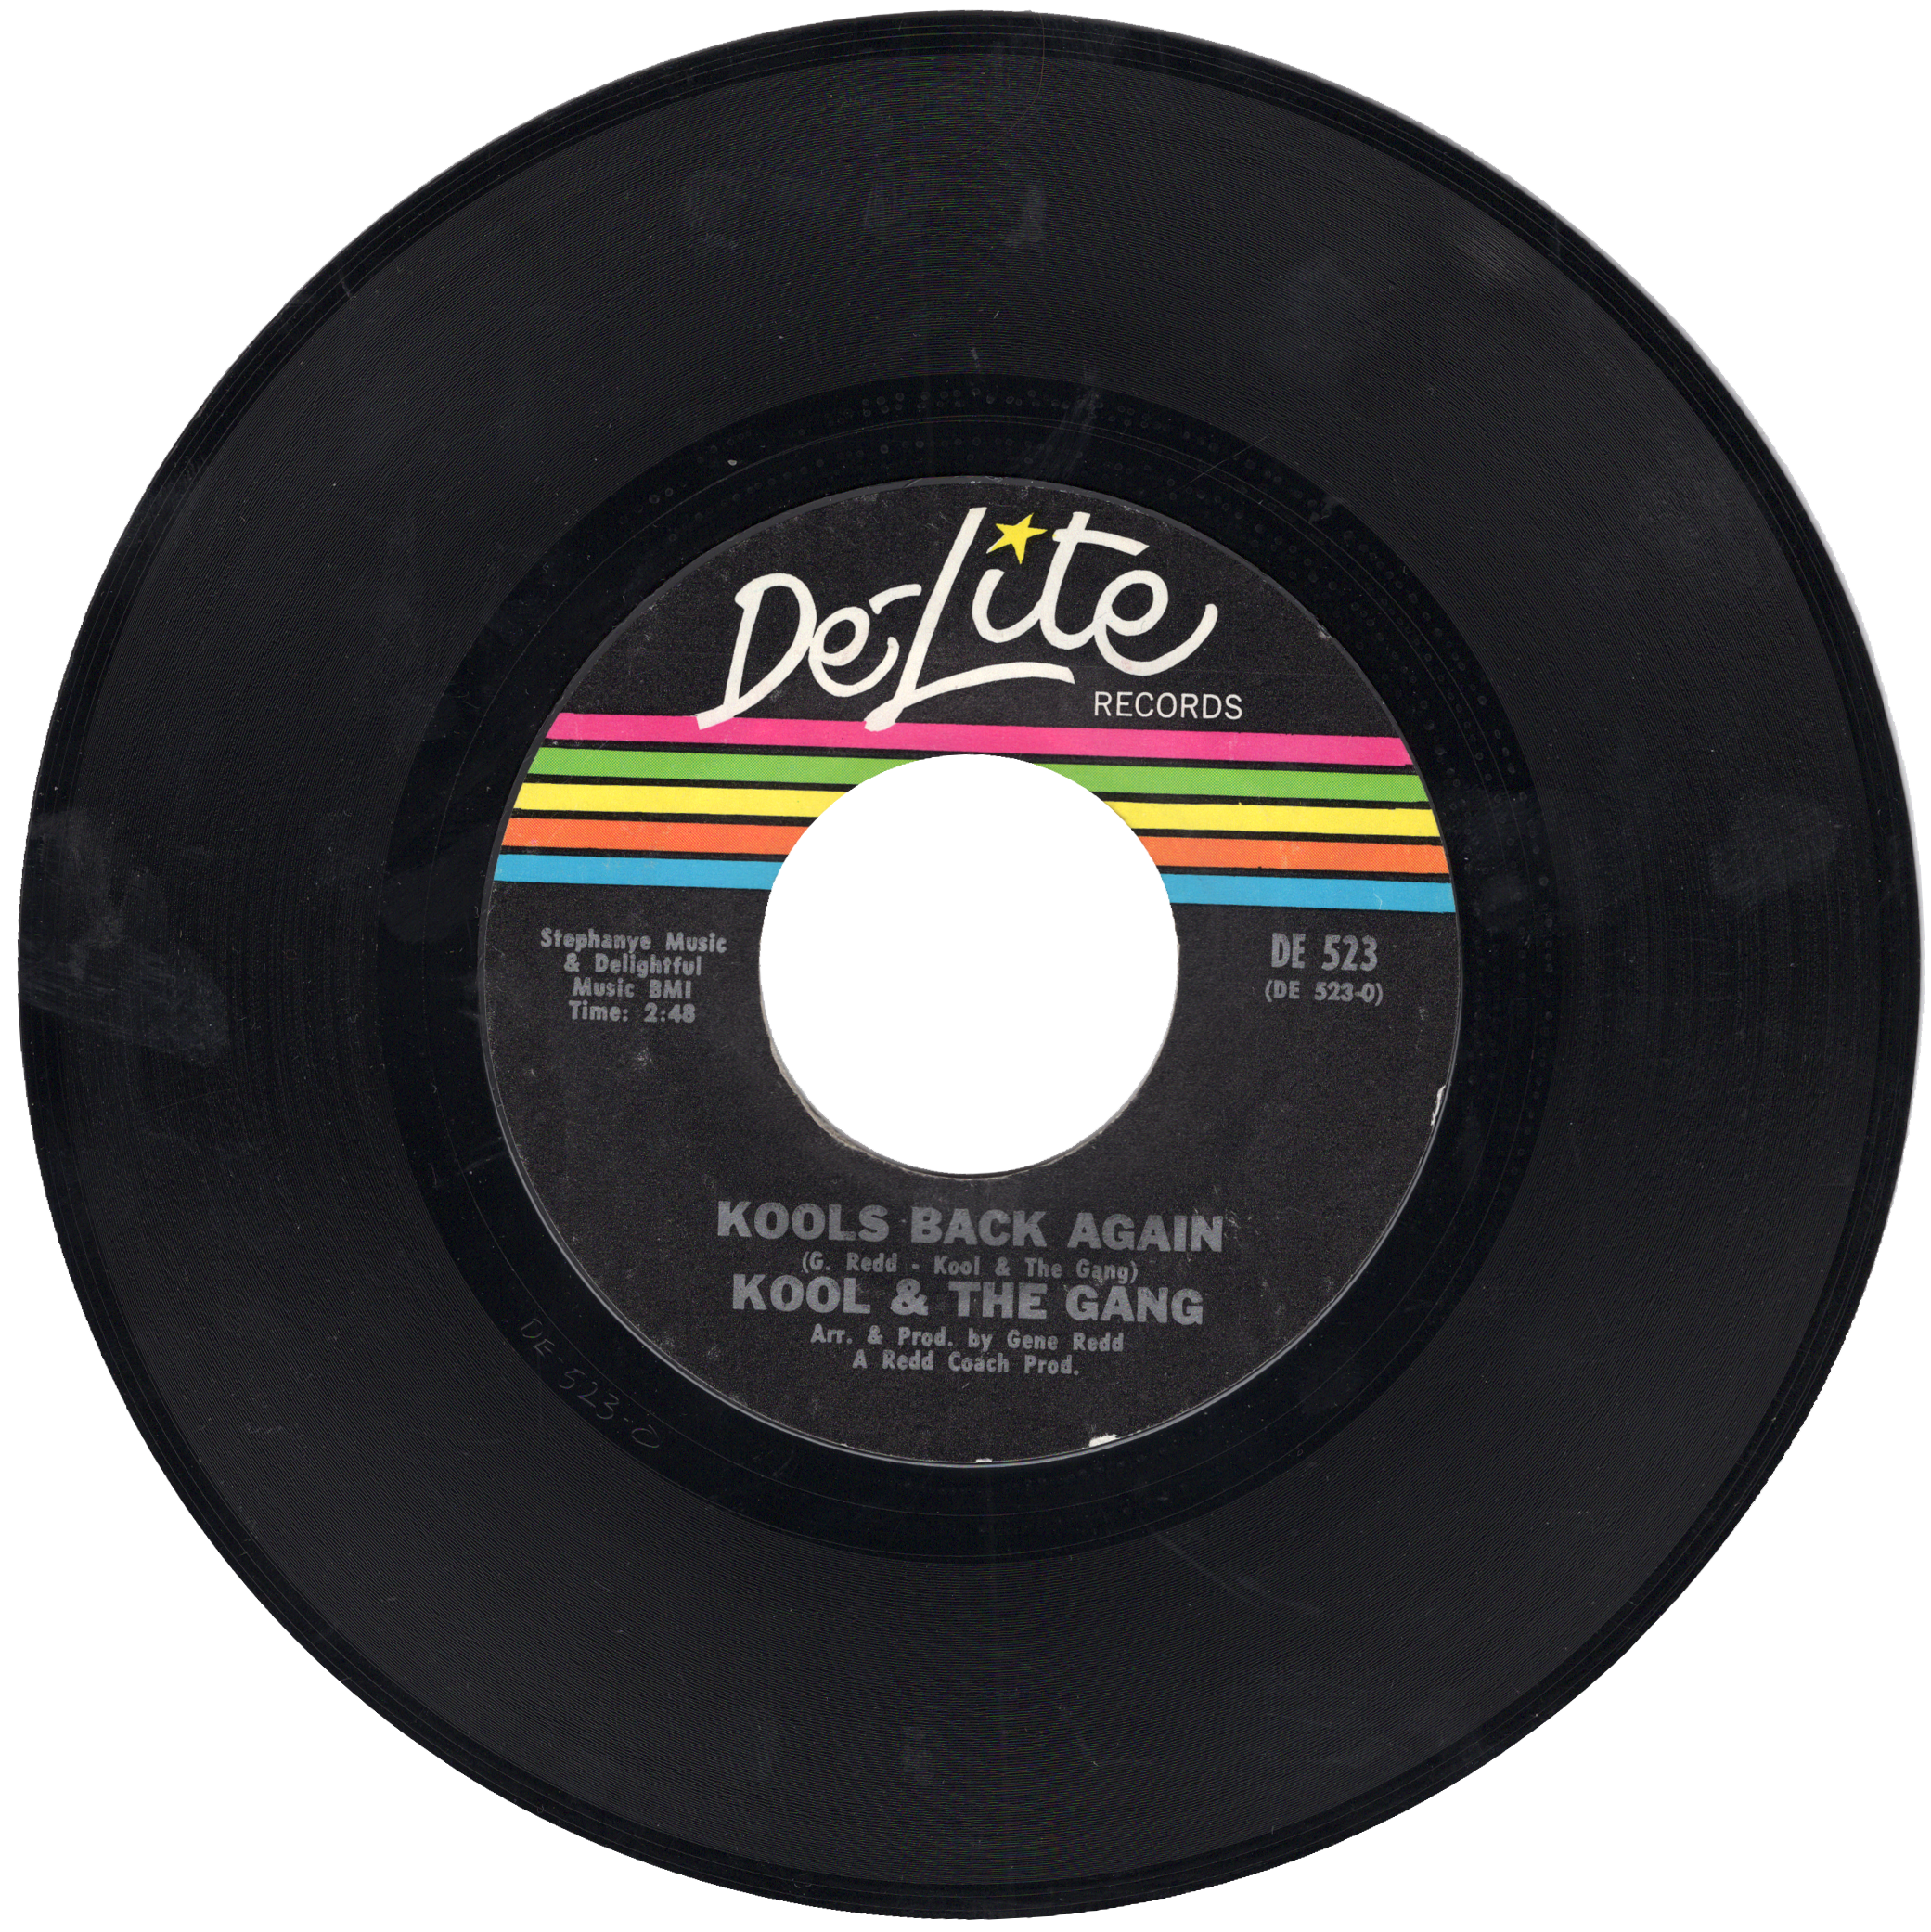 WLWLTDOO-1969-45-KOOL_AND_THE_GANG-KOOLS_BACK_AGAIN-FRONT-DE523.png